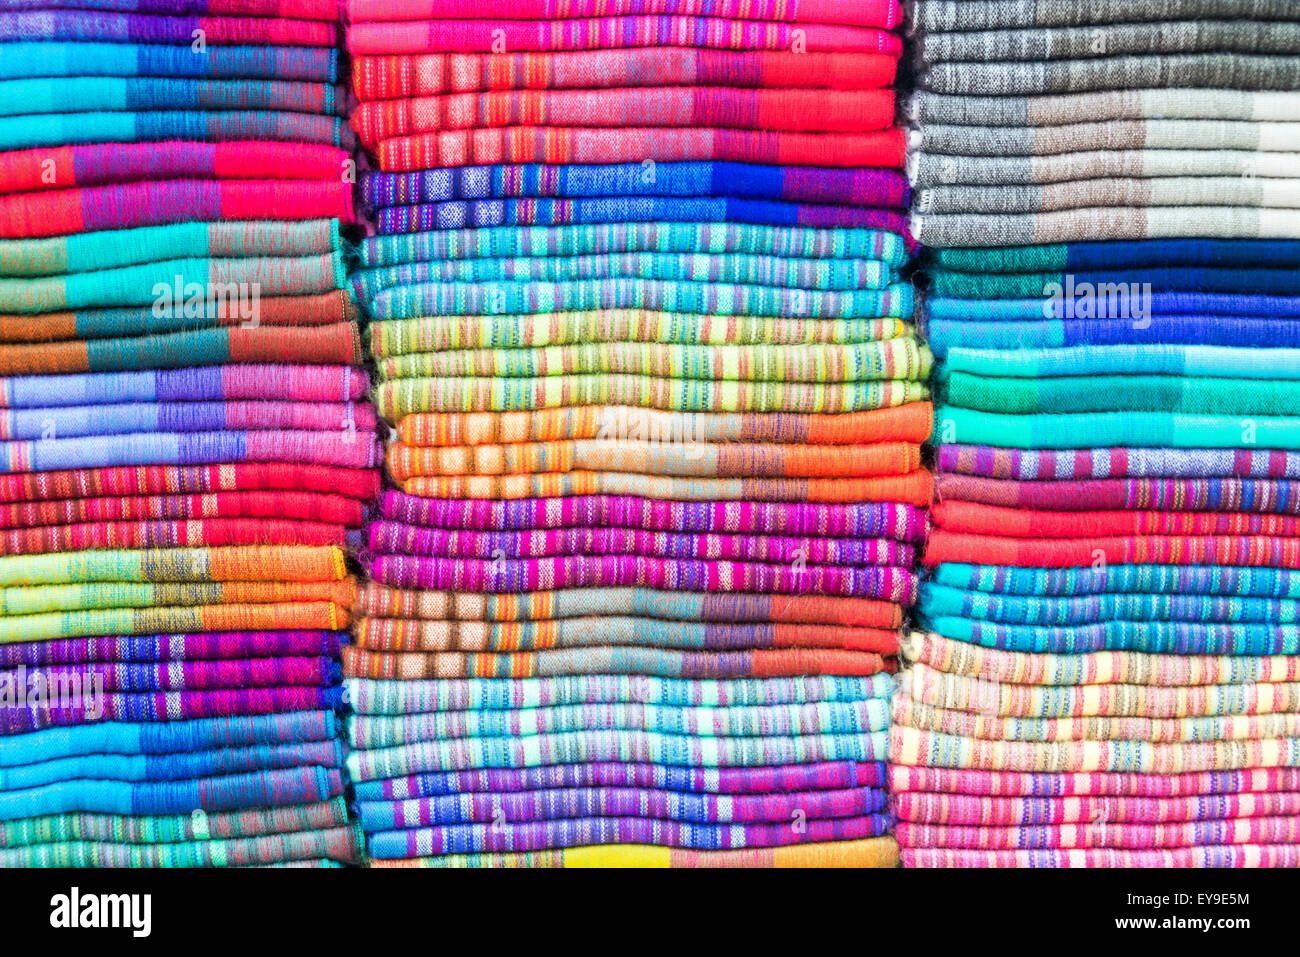 Soft colorful blankets made out of alpaca wool in the famed market of Otavalo, Ecuador - Stock Image